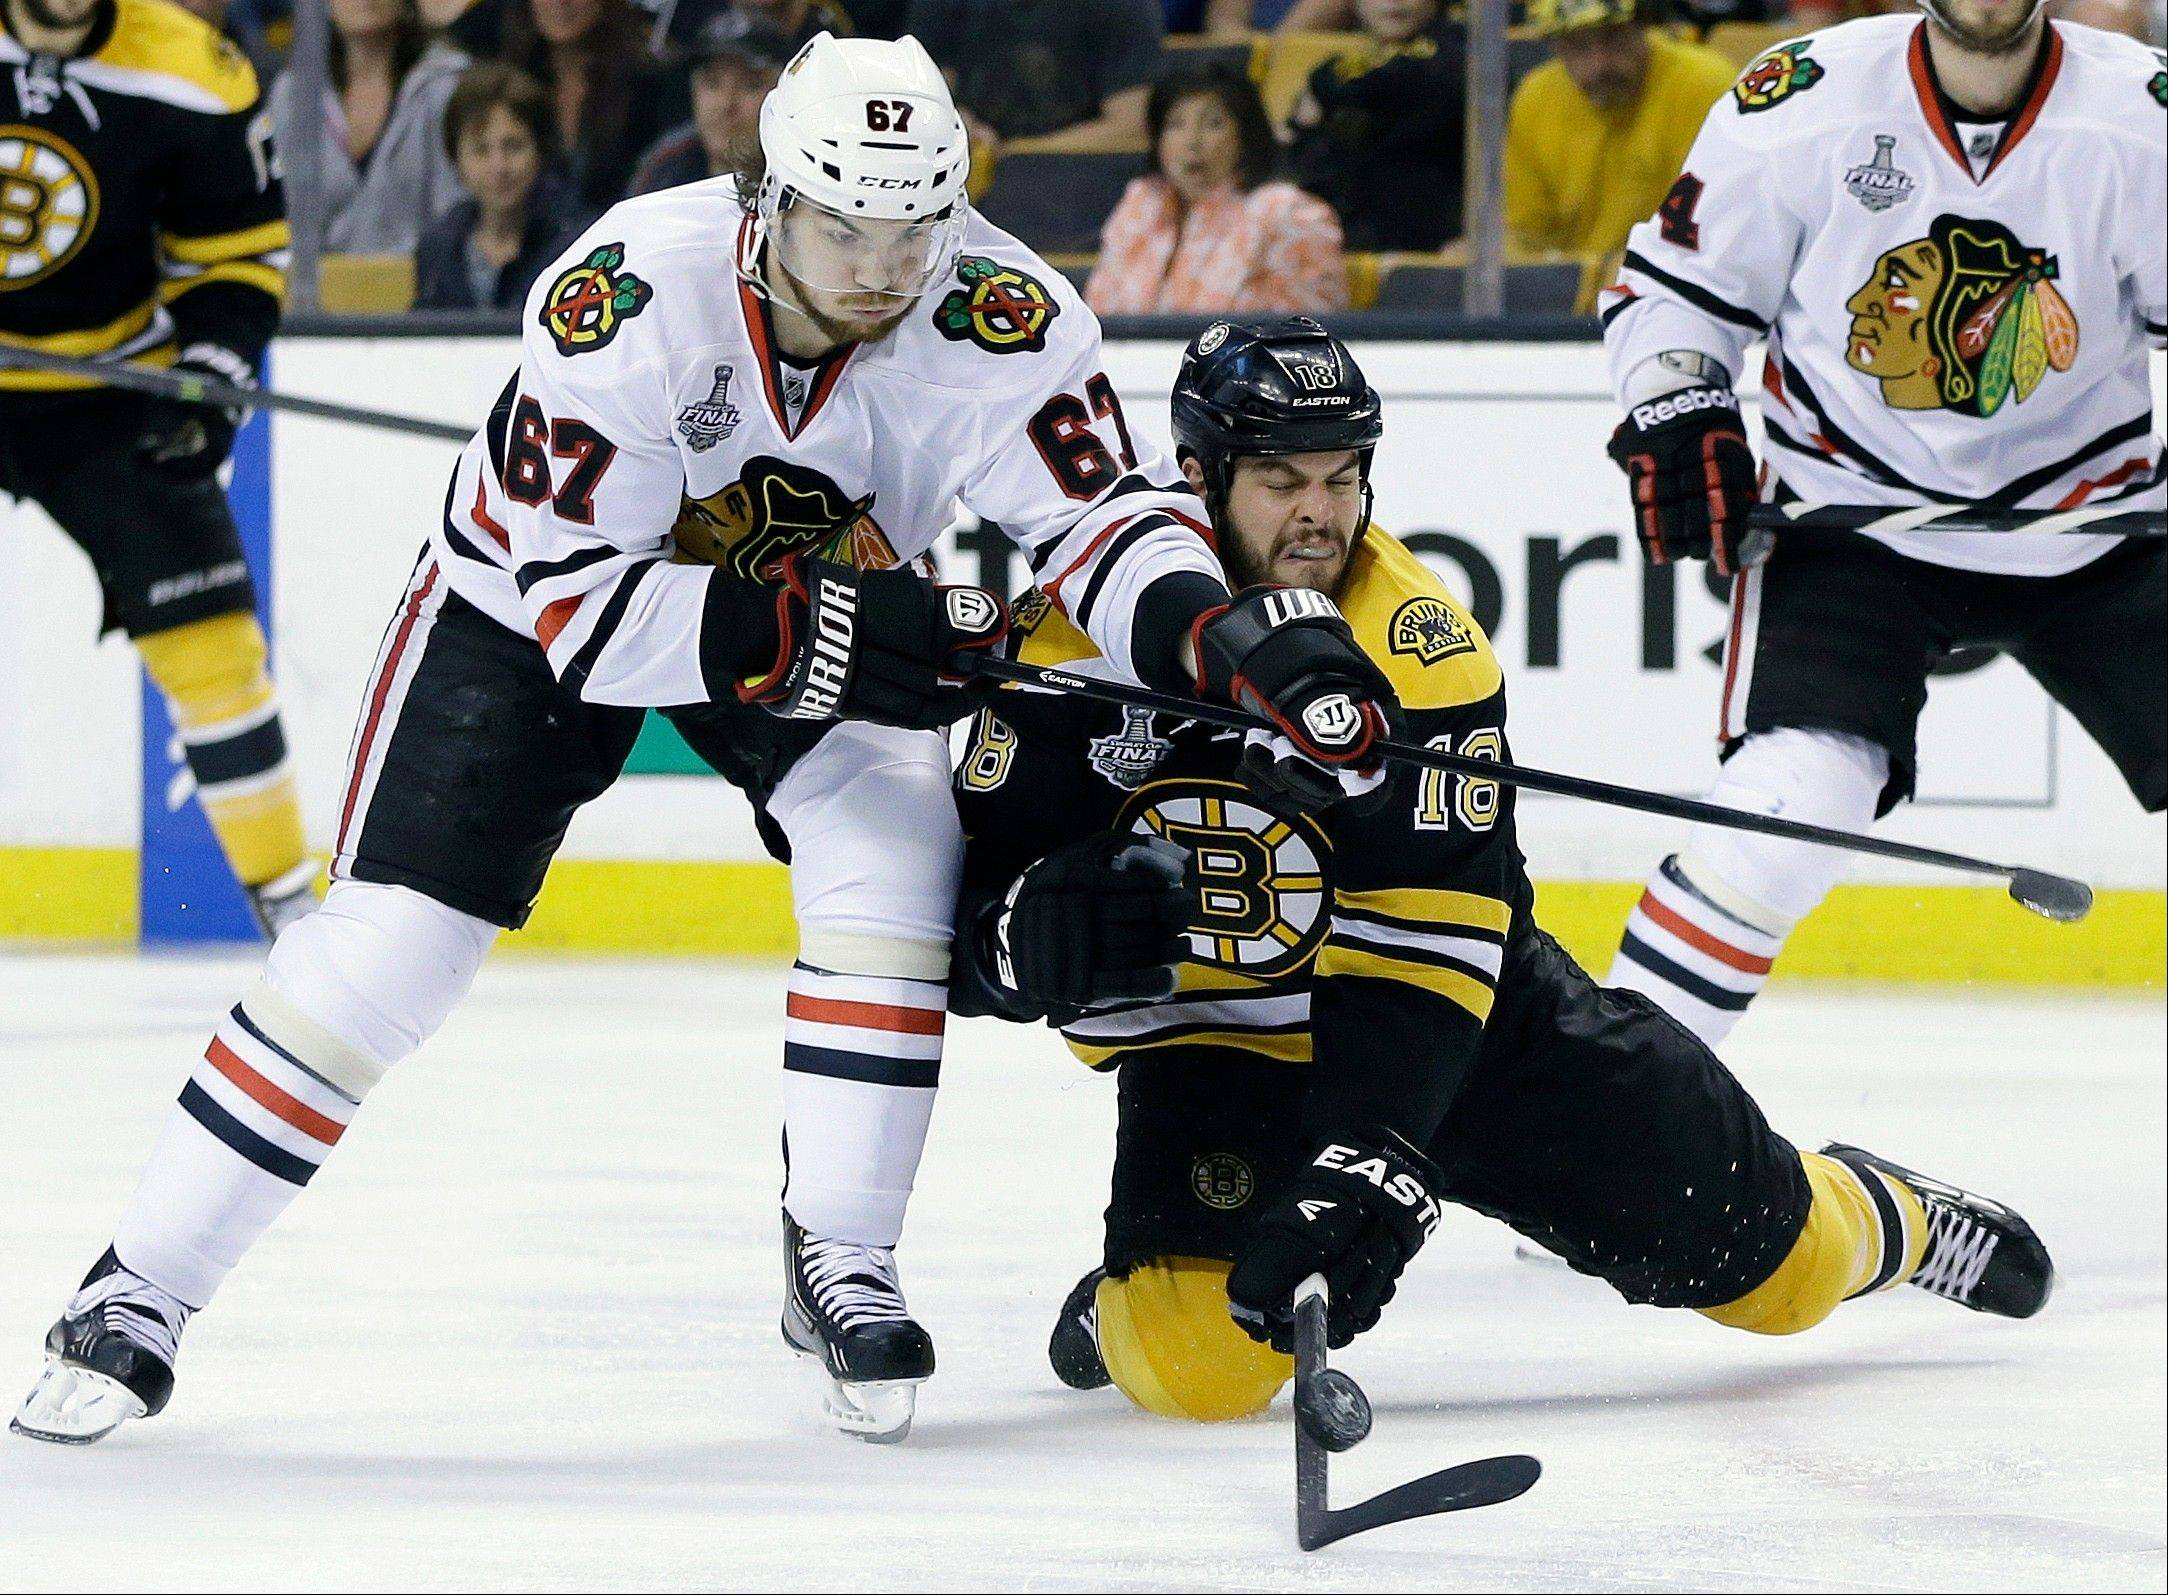 Chicago Blackhawks center Michael Frolik (67), of the Czech Republic, and Boston Bruins right wing Nathan Horton (18) scrap for the puck during the second period in Game 3 of the NHL hockey Stanley Cup Finals.